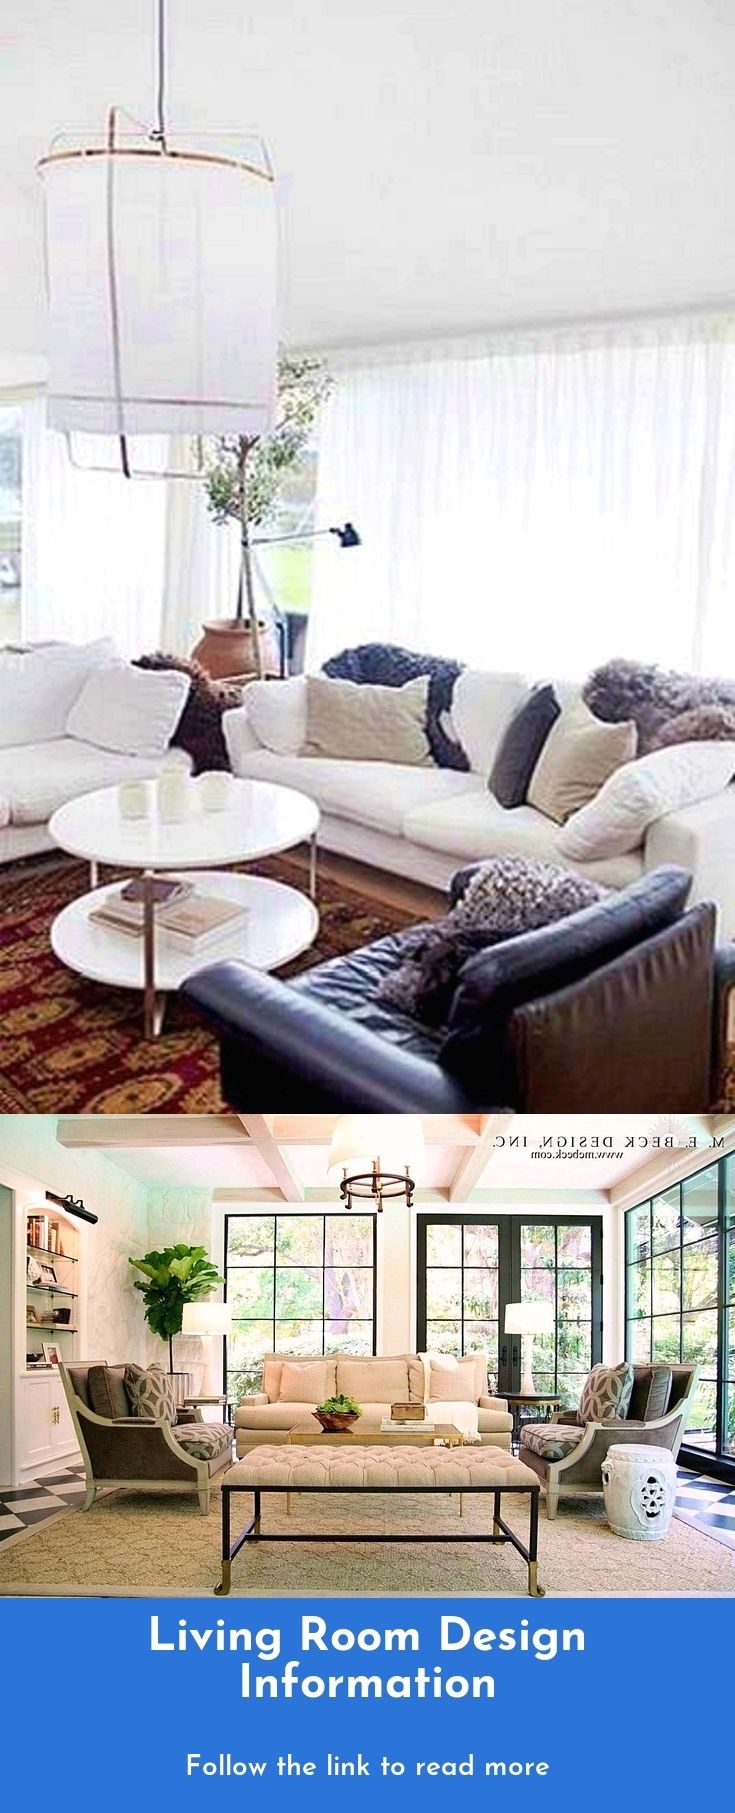 Living Room Interior Design How To Decorate My Living Room Designs Of Interior Living Rooms Living Room Decor Furniture Design Living Room Home Living Room